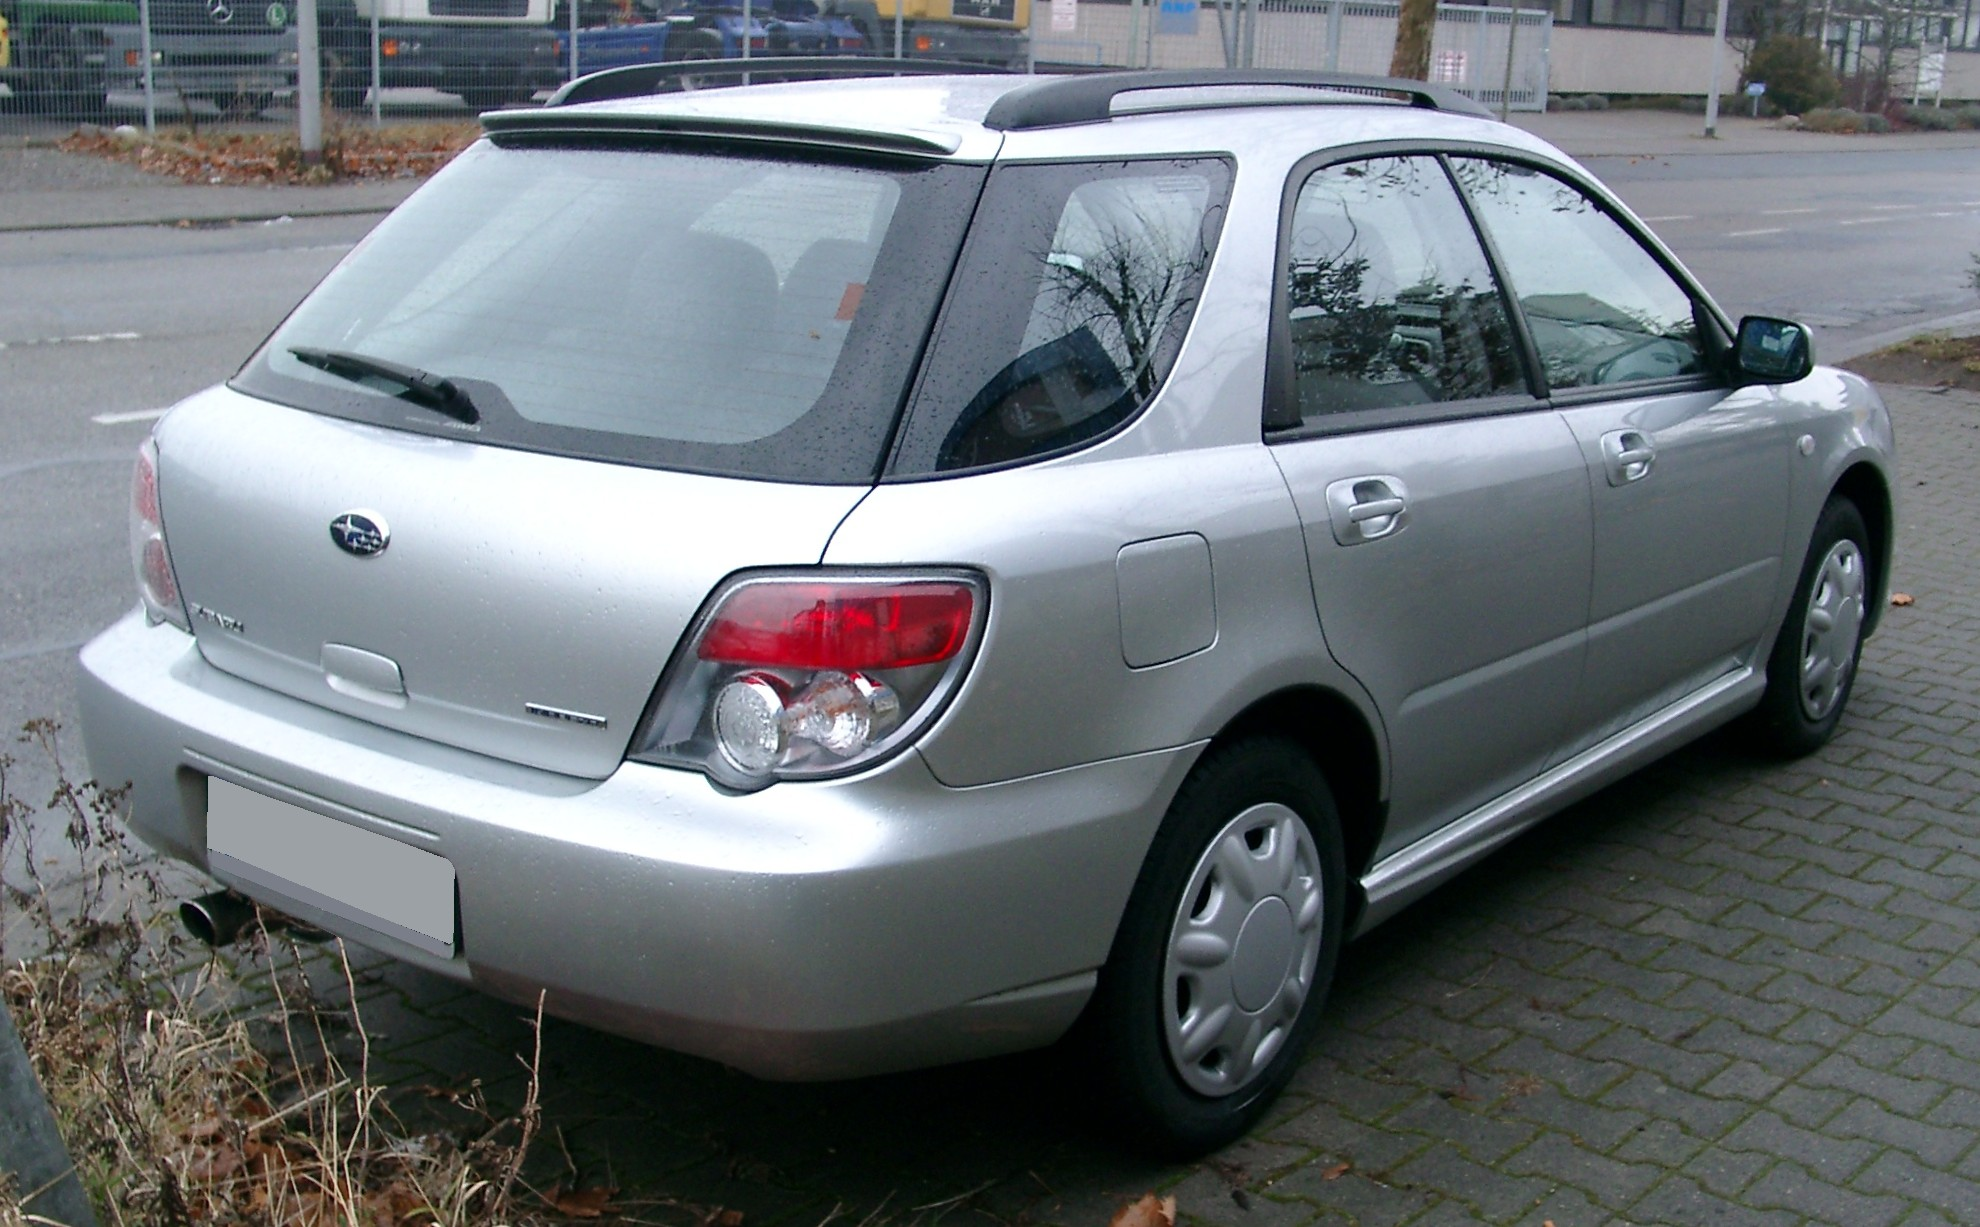 Subaru_Impreza_rear_20071231 Take A Look About 2002 Subaru Impreza Wrx Specs